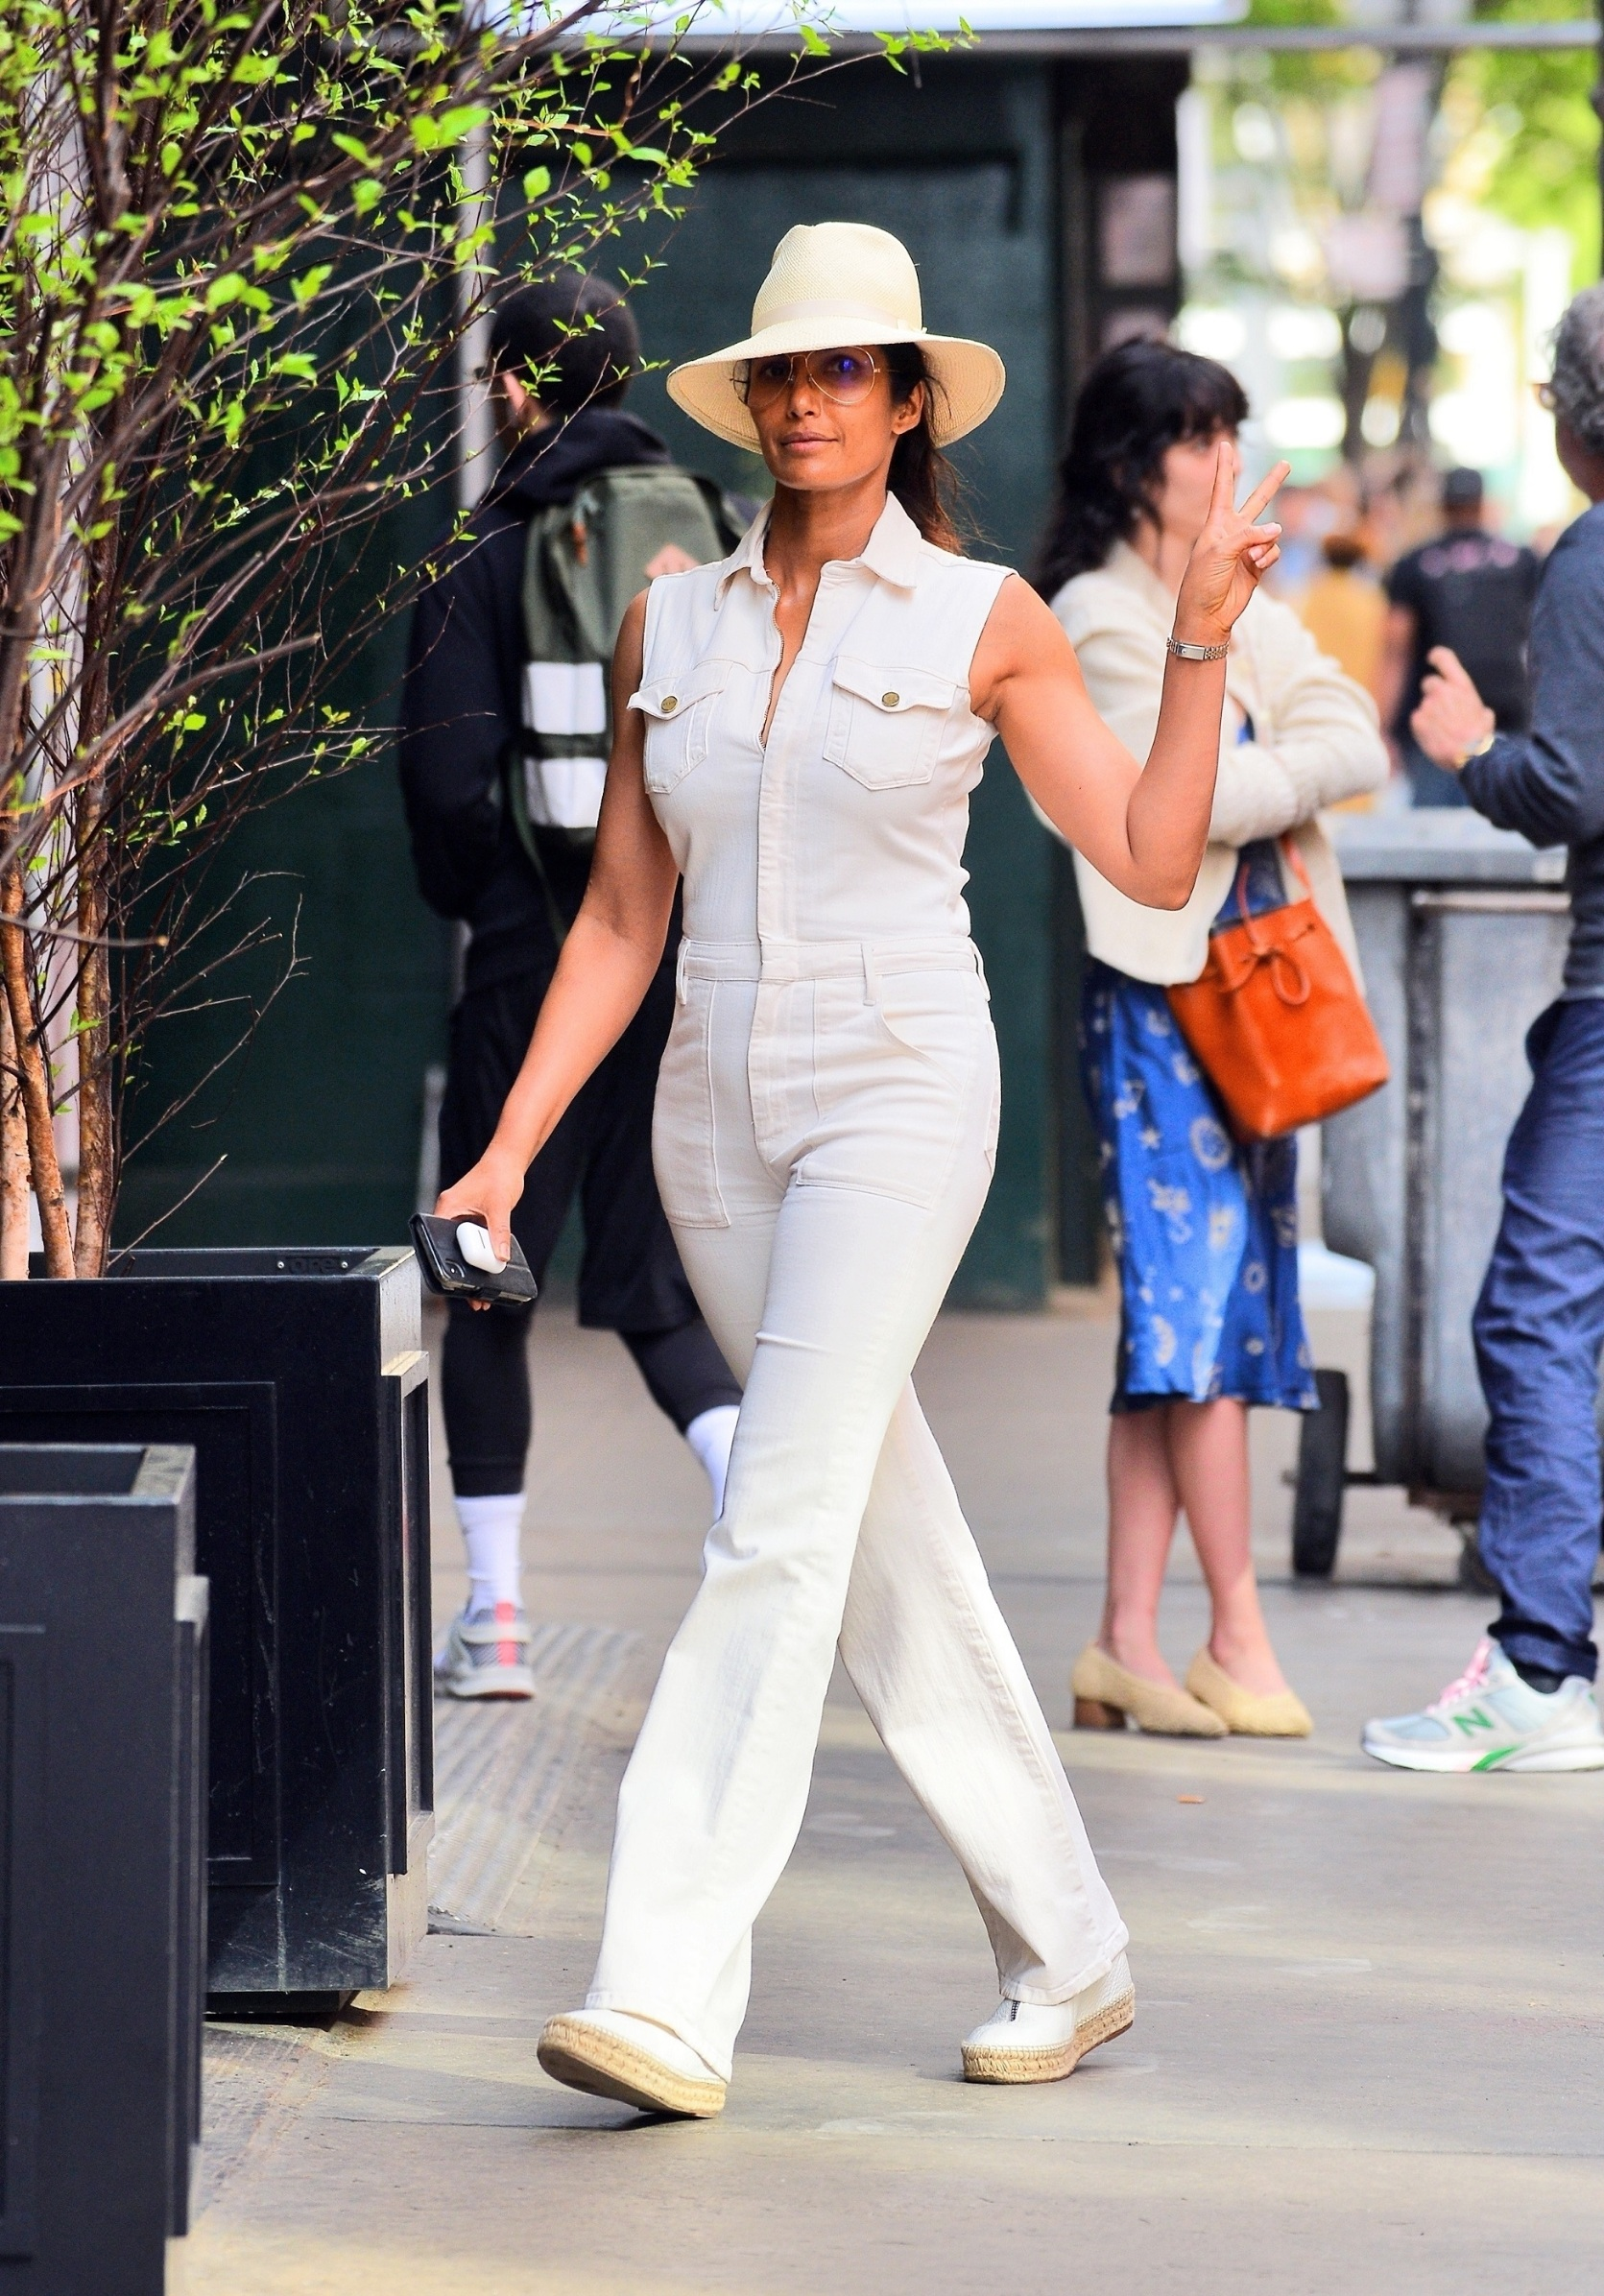 New York, NY -  - *EXCLUSIVE*  - Padma Lakshmi looks stylish in a safari inspired outfit as she steps out on a sunny day in NYC.  Pictured: Padma Lakshmi    *UK Clients - Pictures Containing Children Please Pixelate Face Prior To Publication*, Image: 427796736, License: Rights-managed, Restrictions: , Model Release: no, Credit line: Jawad Elatab / BACKGRID / Backgrid USA / Profimedia